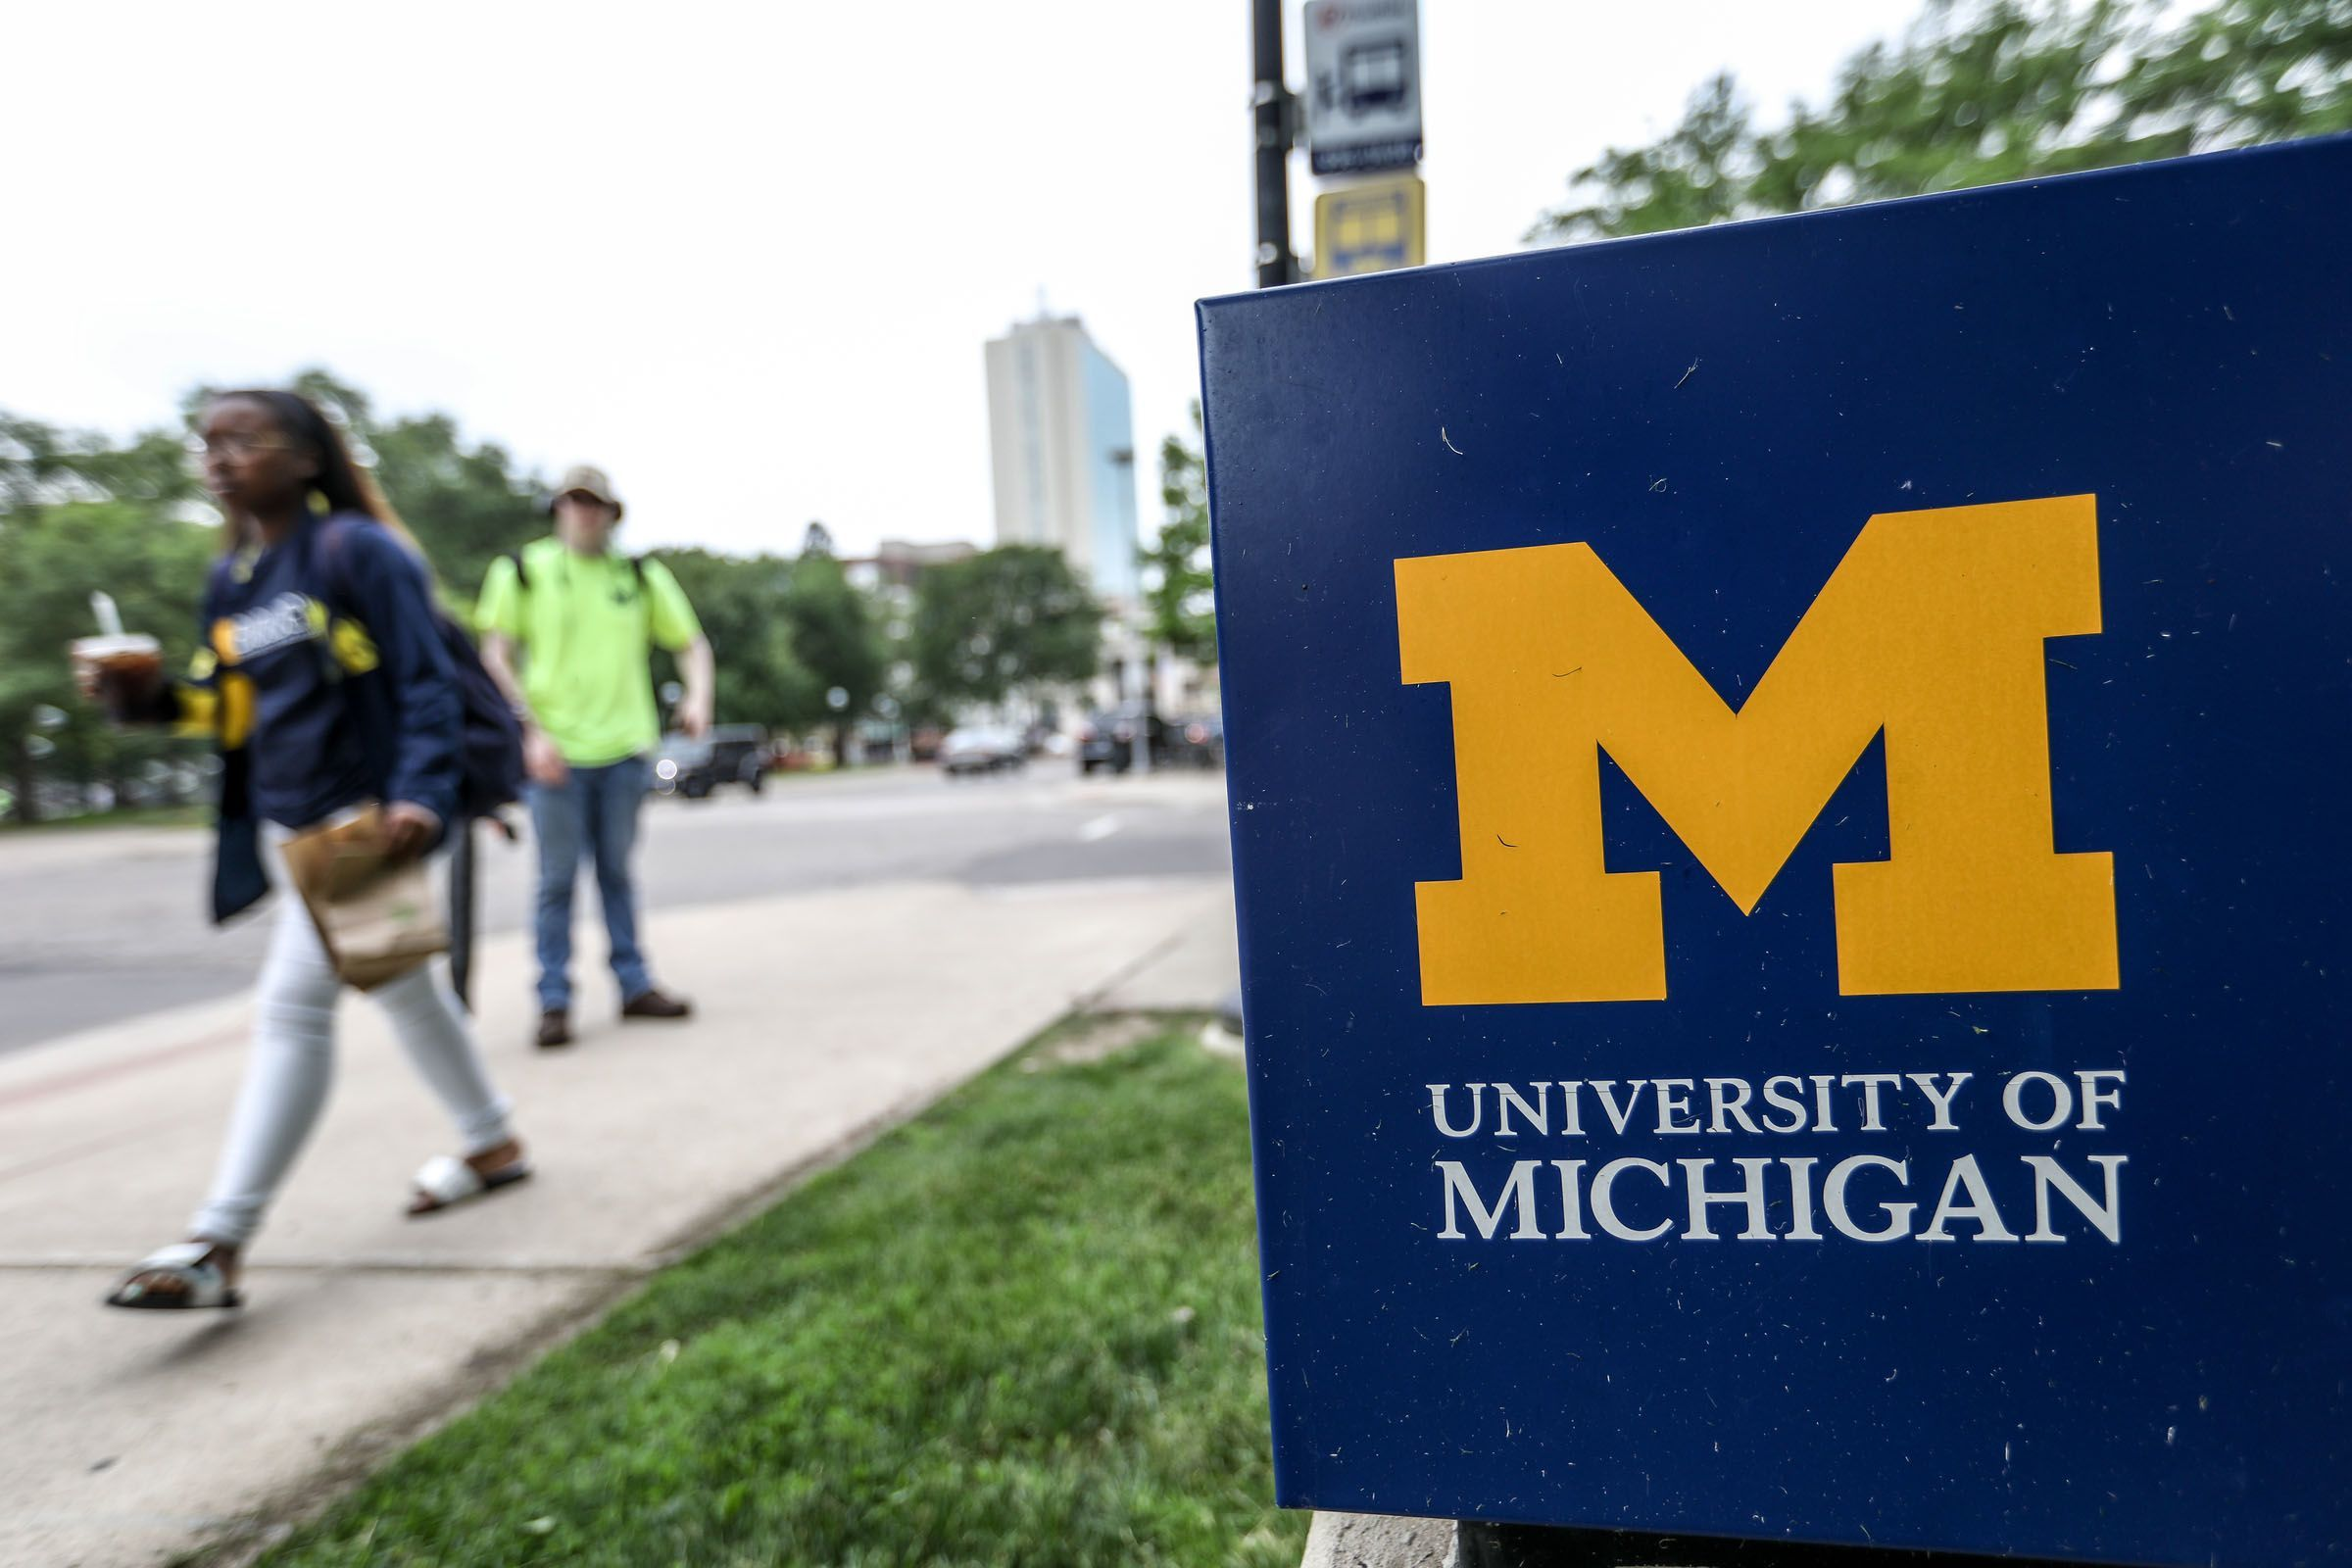 University of Michigan: We shouldn't have closed library after recluse spiders found